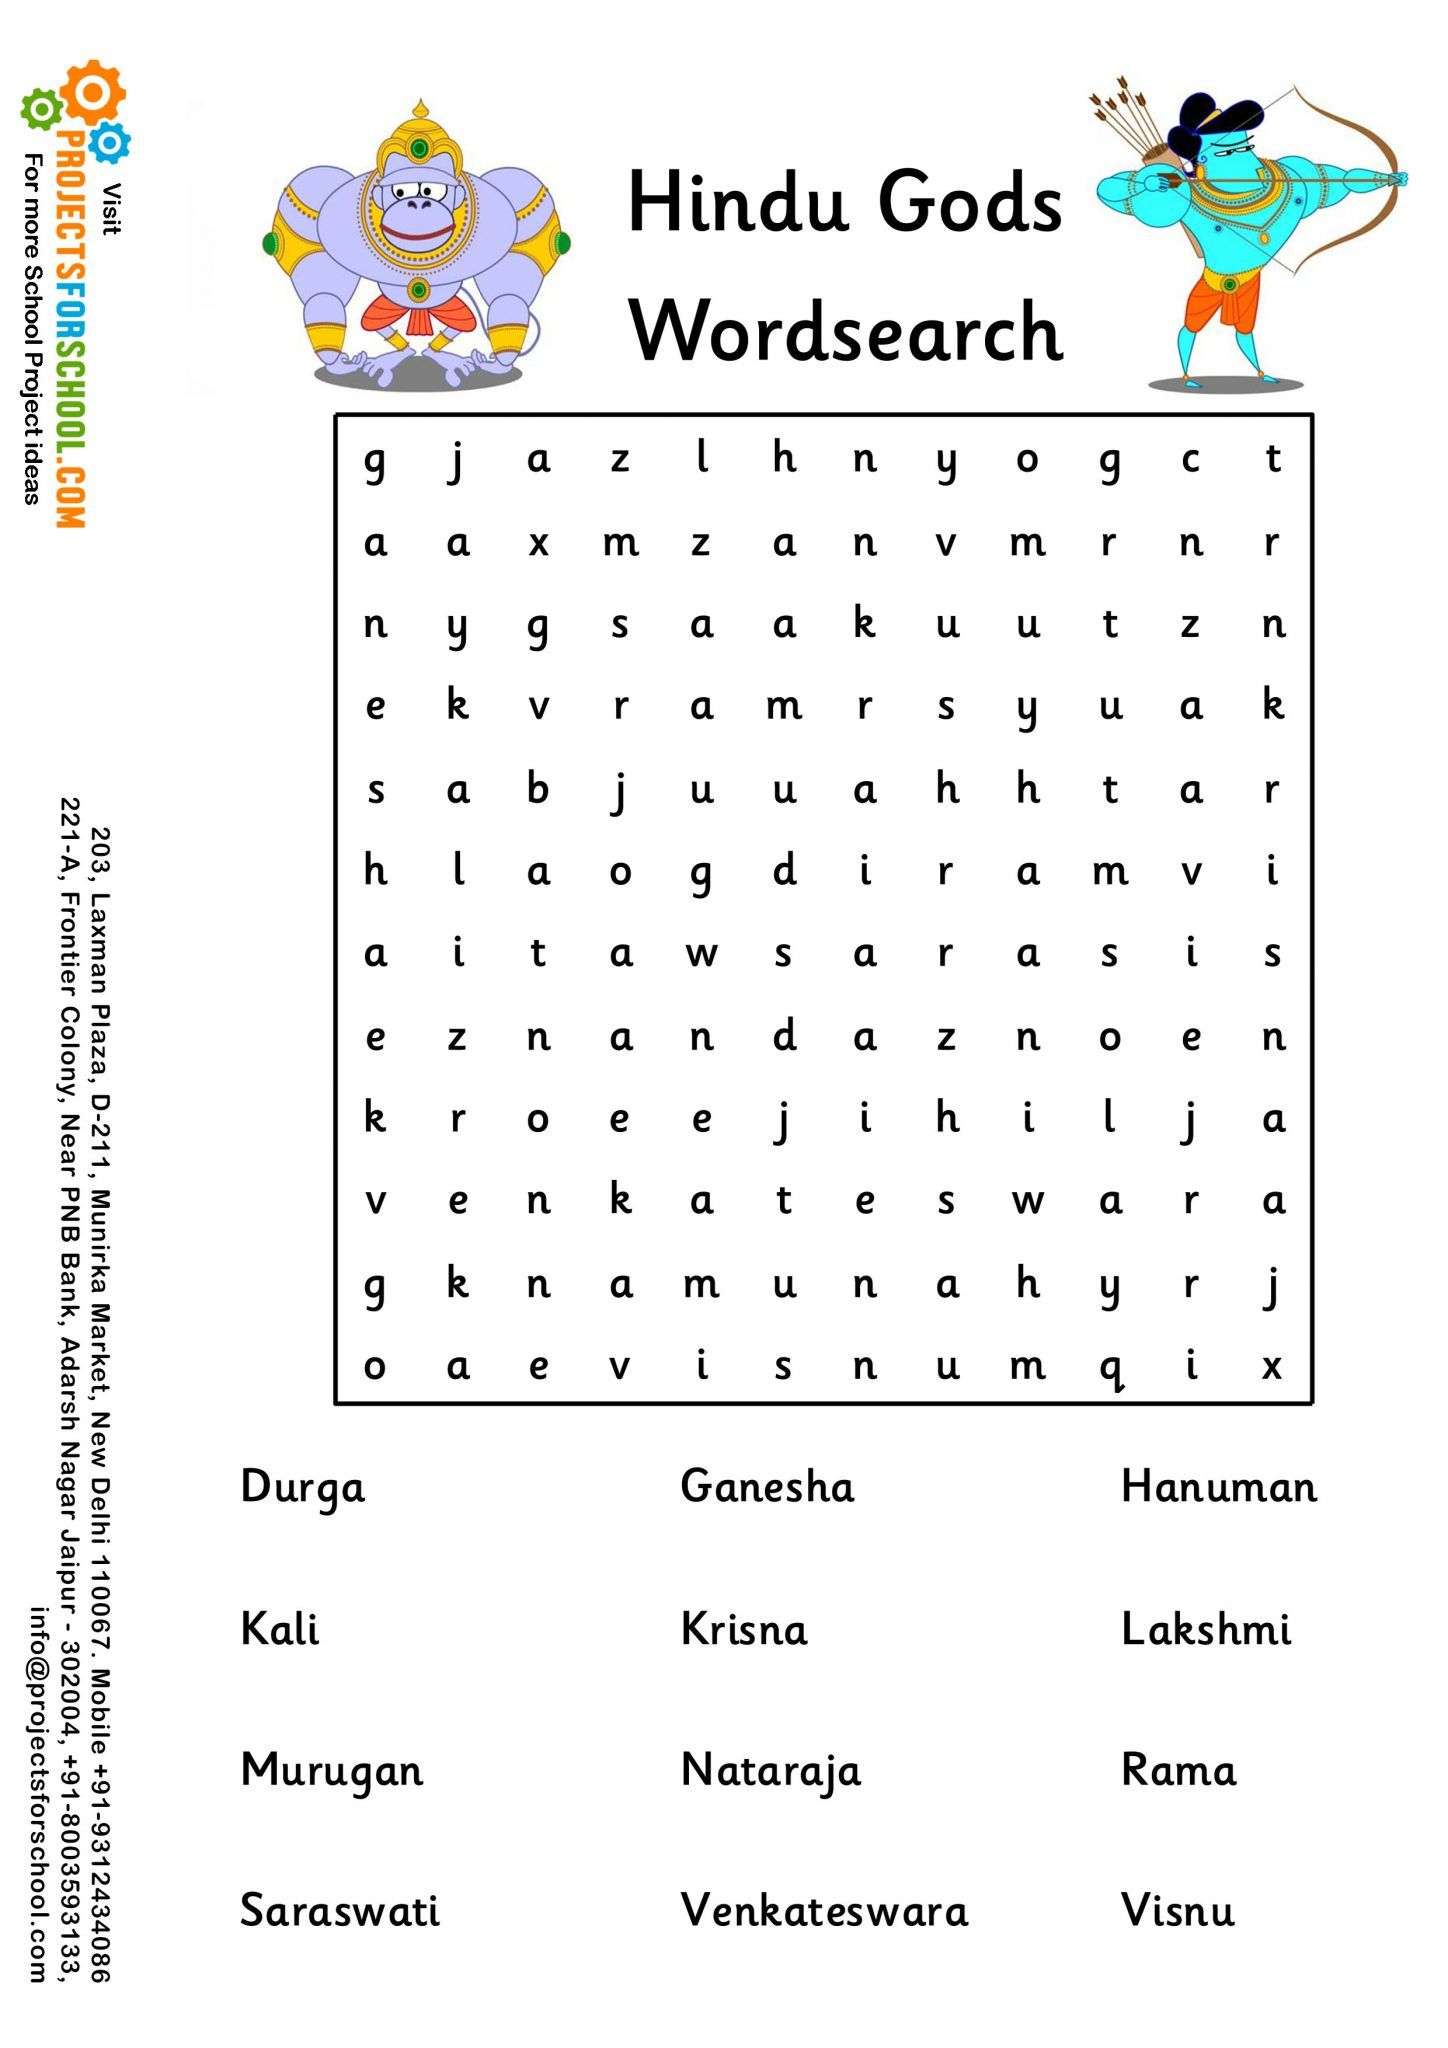 Hindu Gods Wordsearch